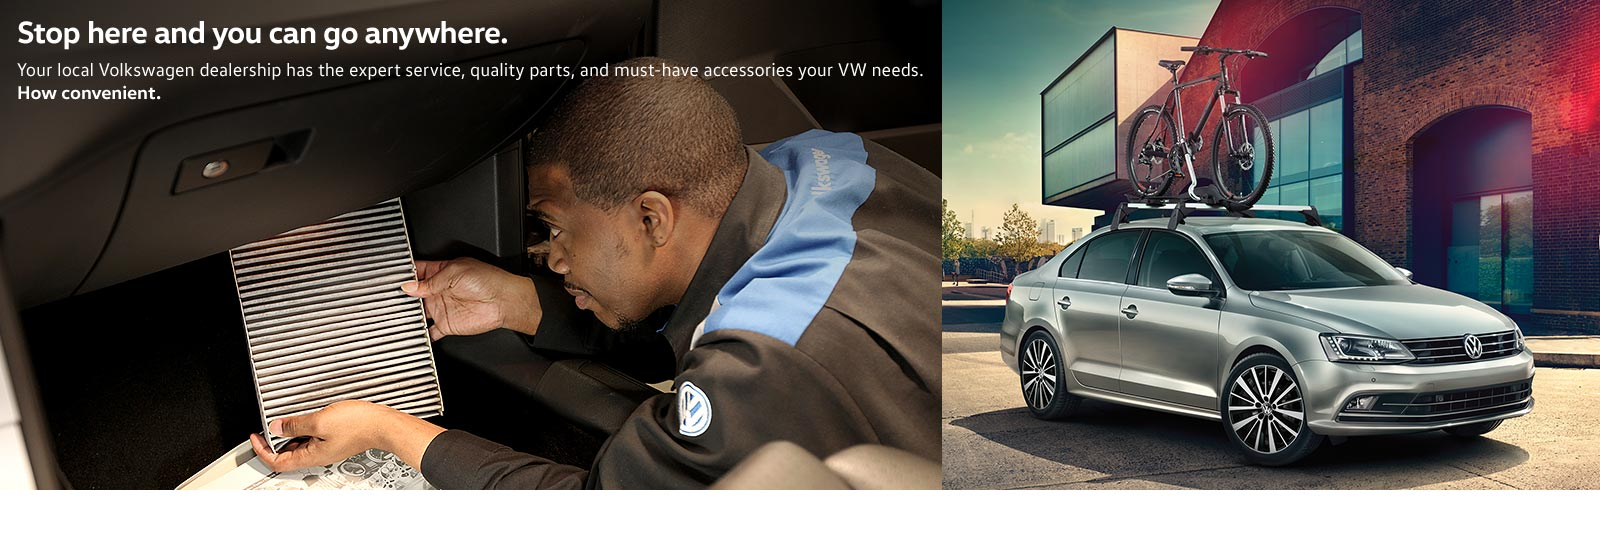 Quality, expertise, convenience, and value. Get the service you deserve at your local Volkswagen dealer.